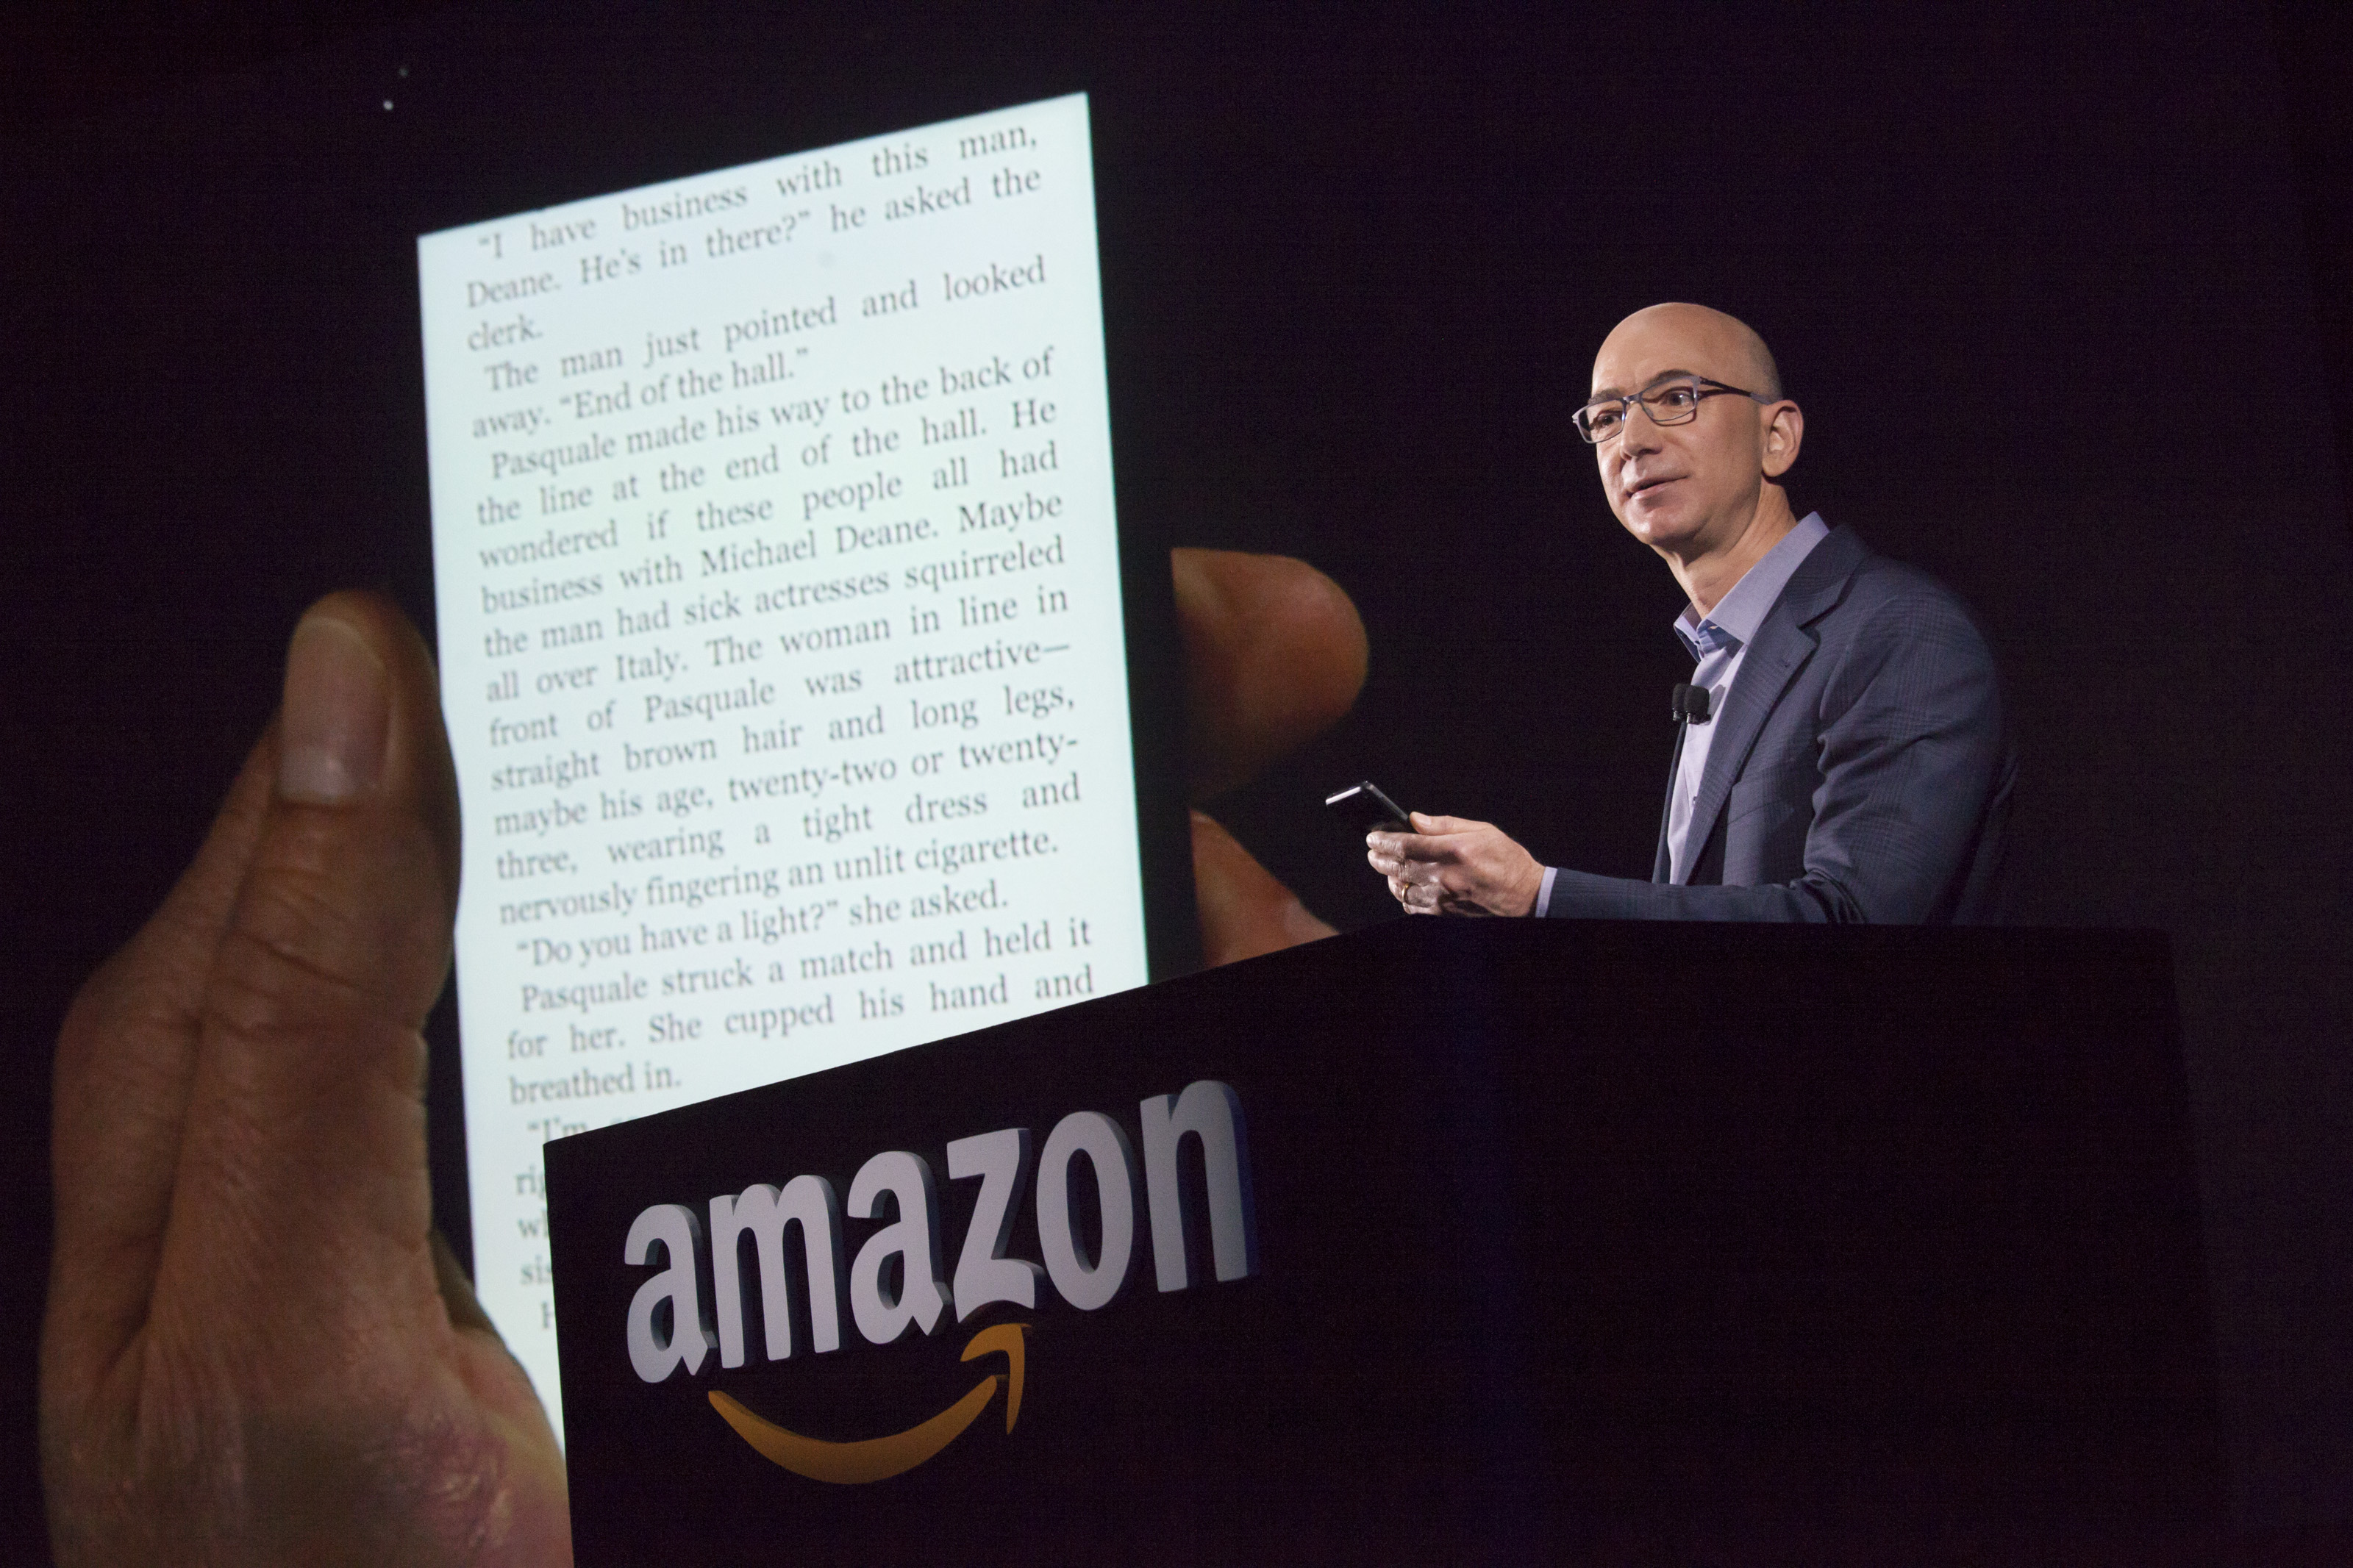 Amazon.com founder and CEO Jeff Bezos demonstrates the company's first smartphone, the Fire Phone, on June 18, 2014 in Seattle, Washington. The much-anticipated device is available for pre-order today and is available exclusively with AT&T service. (Photo by David Ryder/Getty Images)